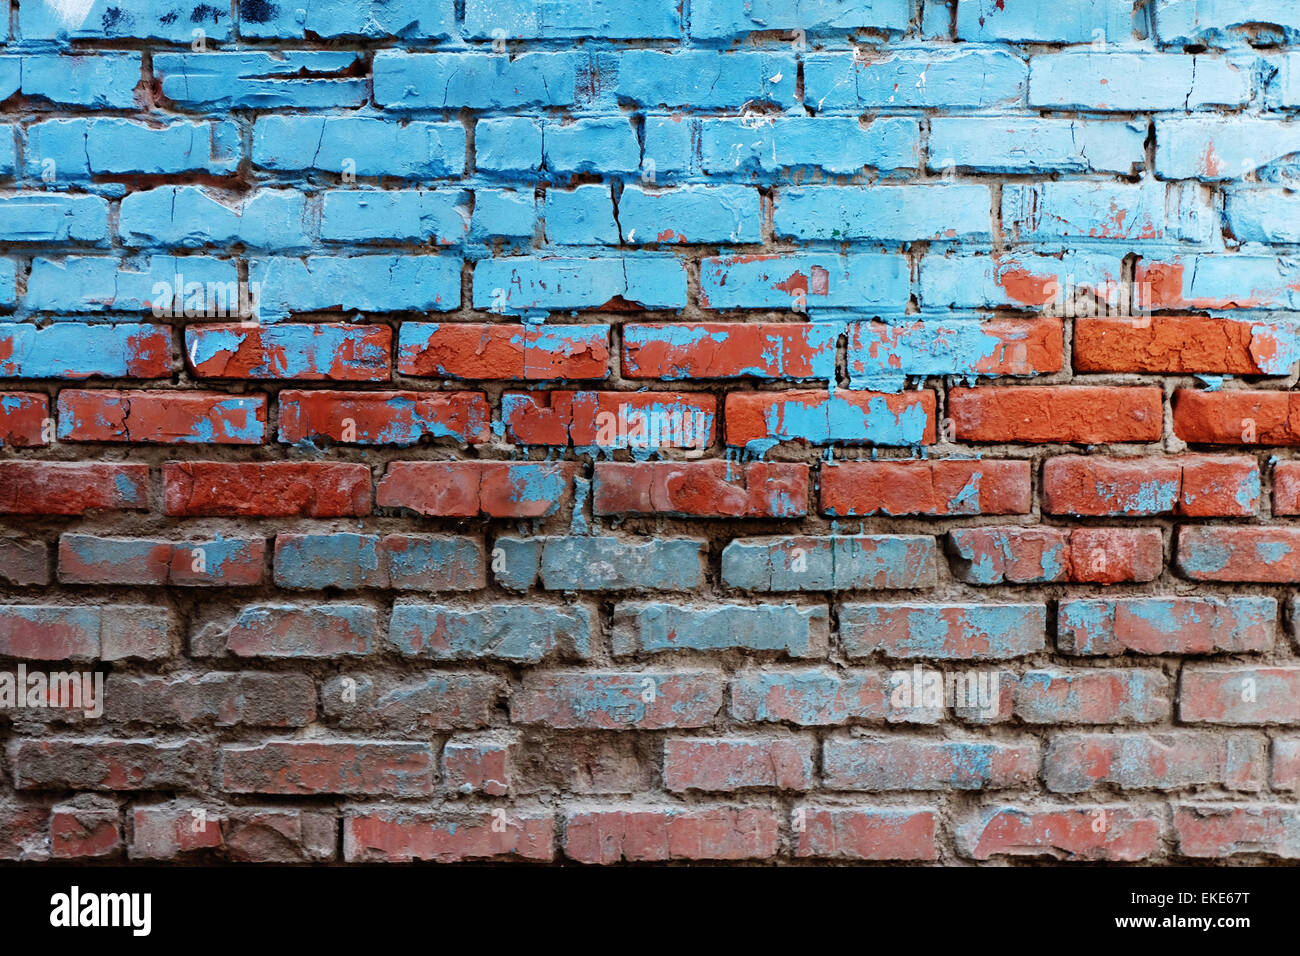 Old red brick wall half painted in bright blue color a lot of copyspace background Stock Photo